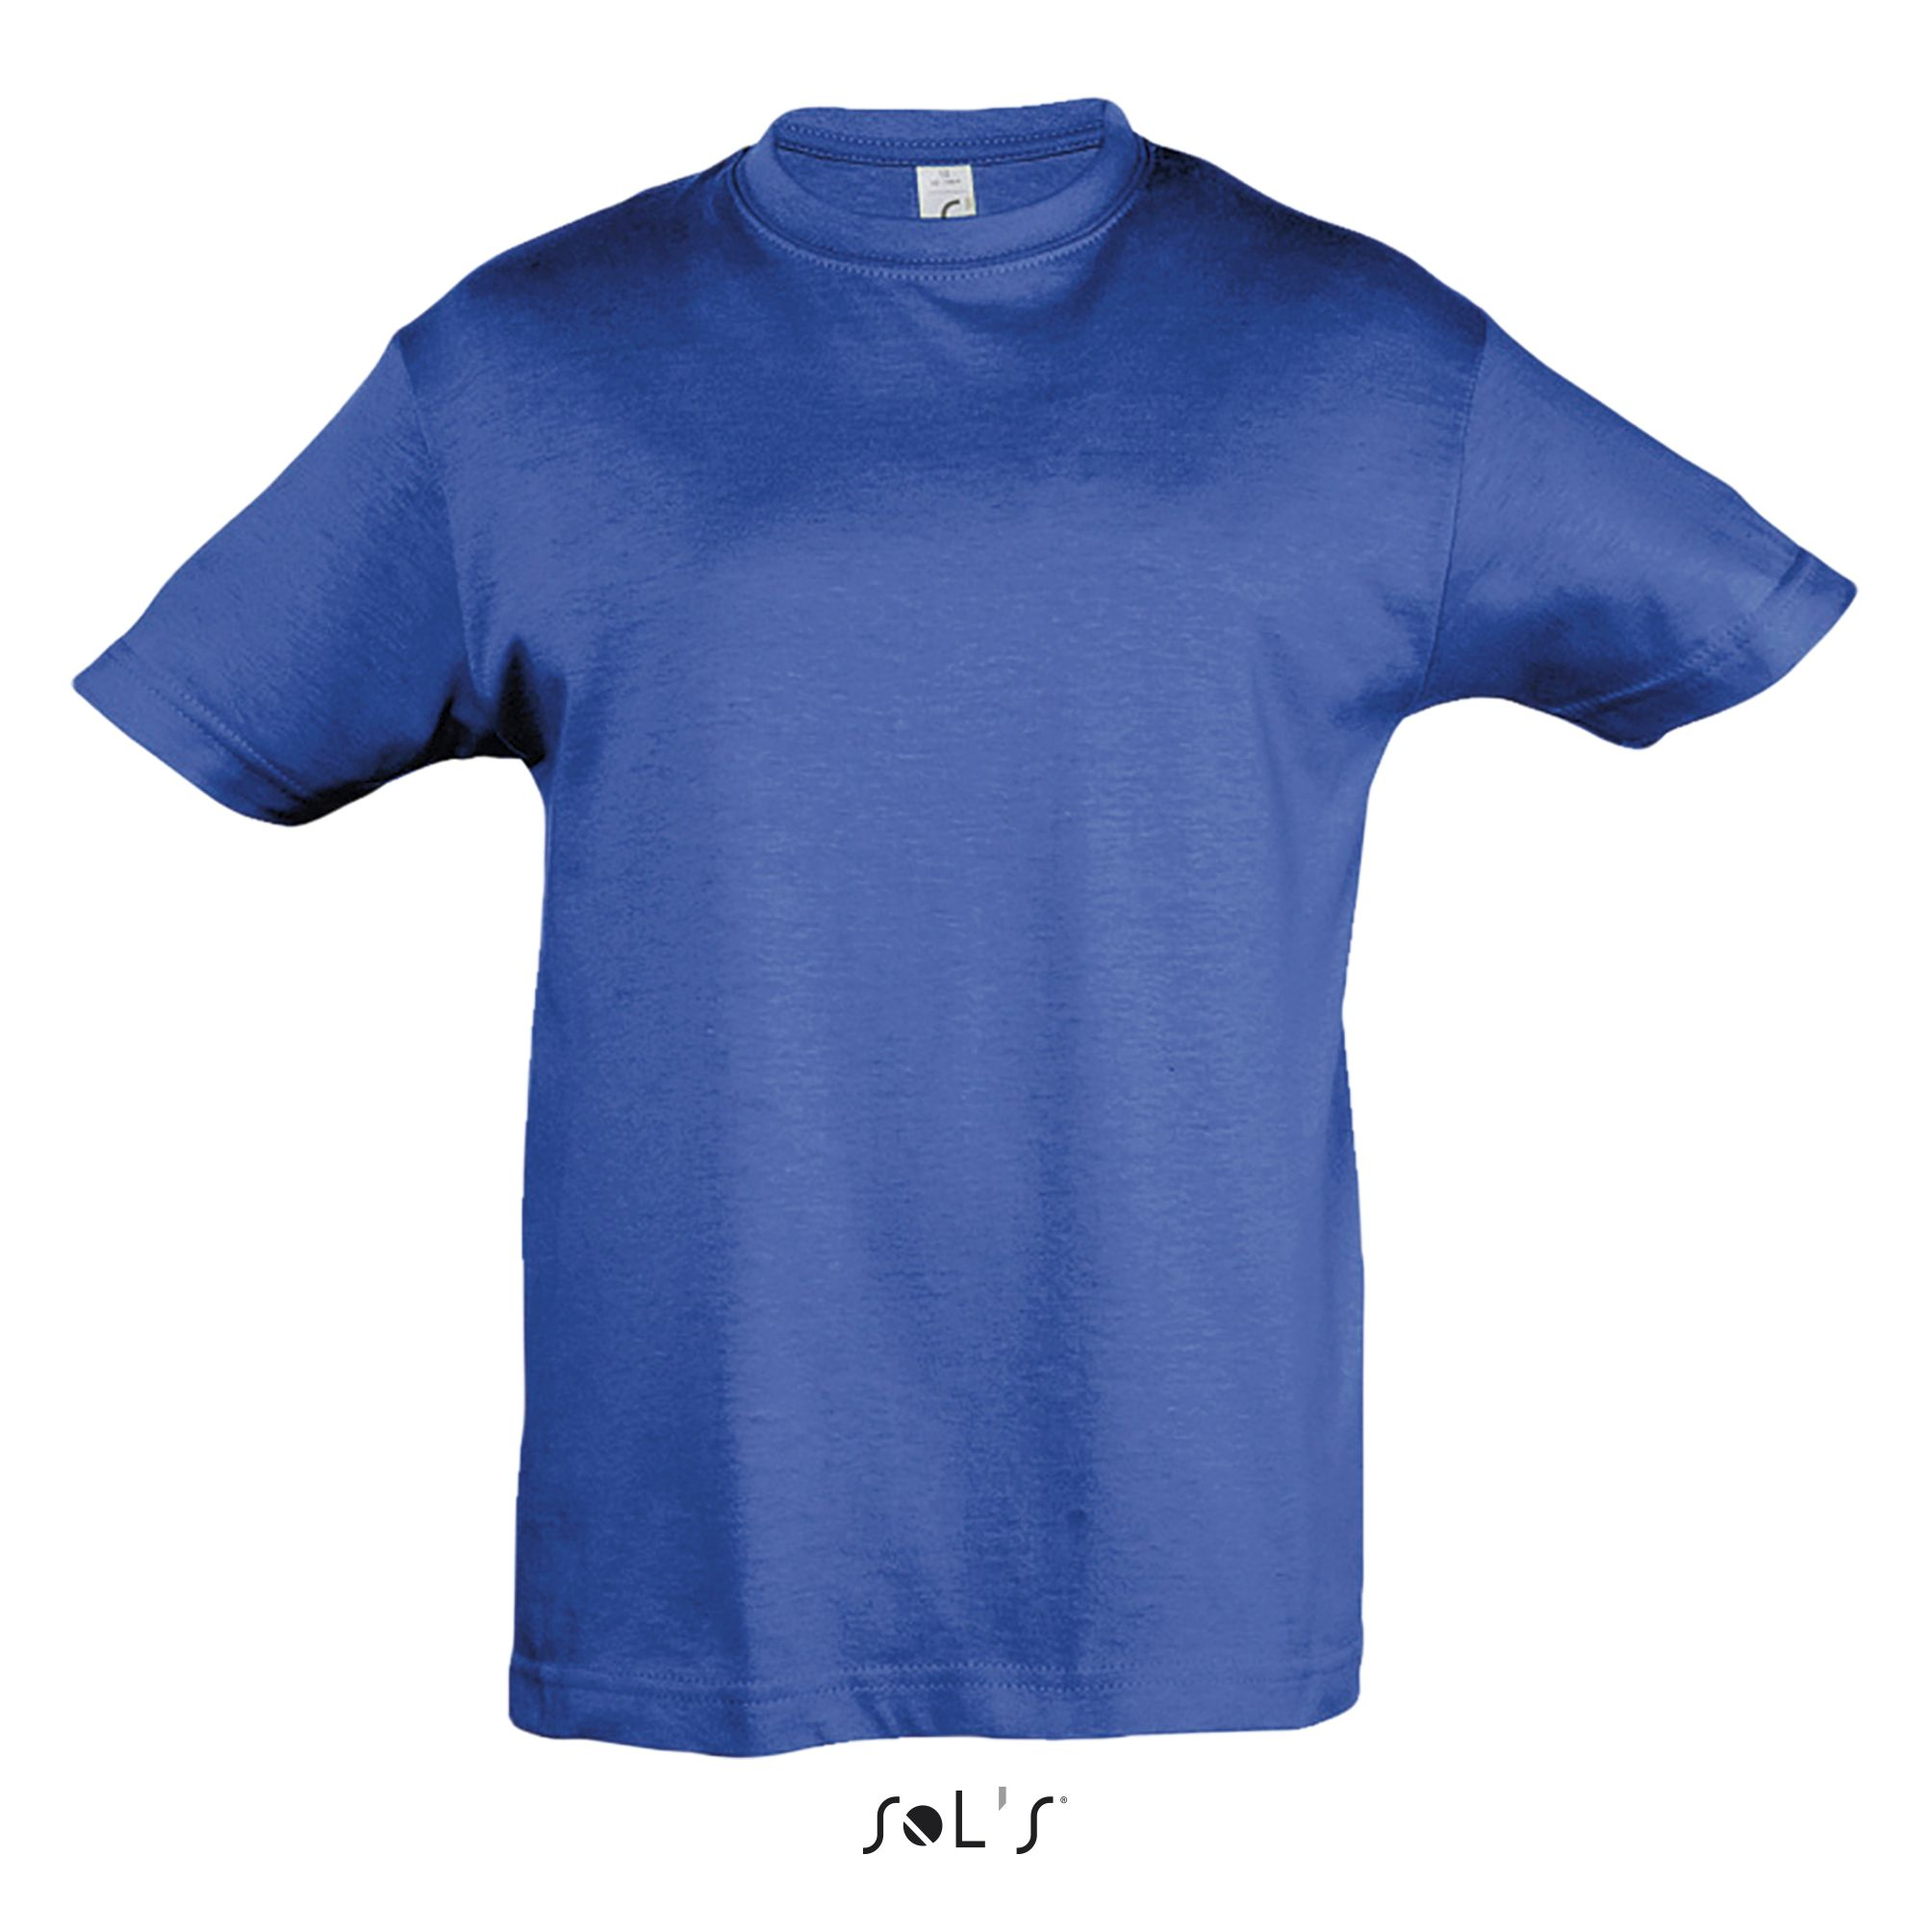 241 - Royal blue